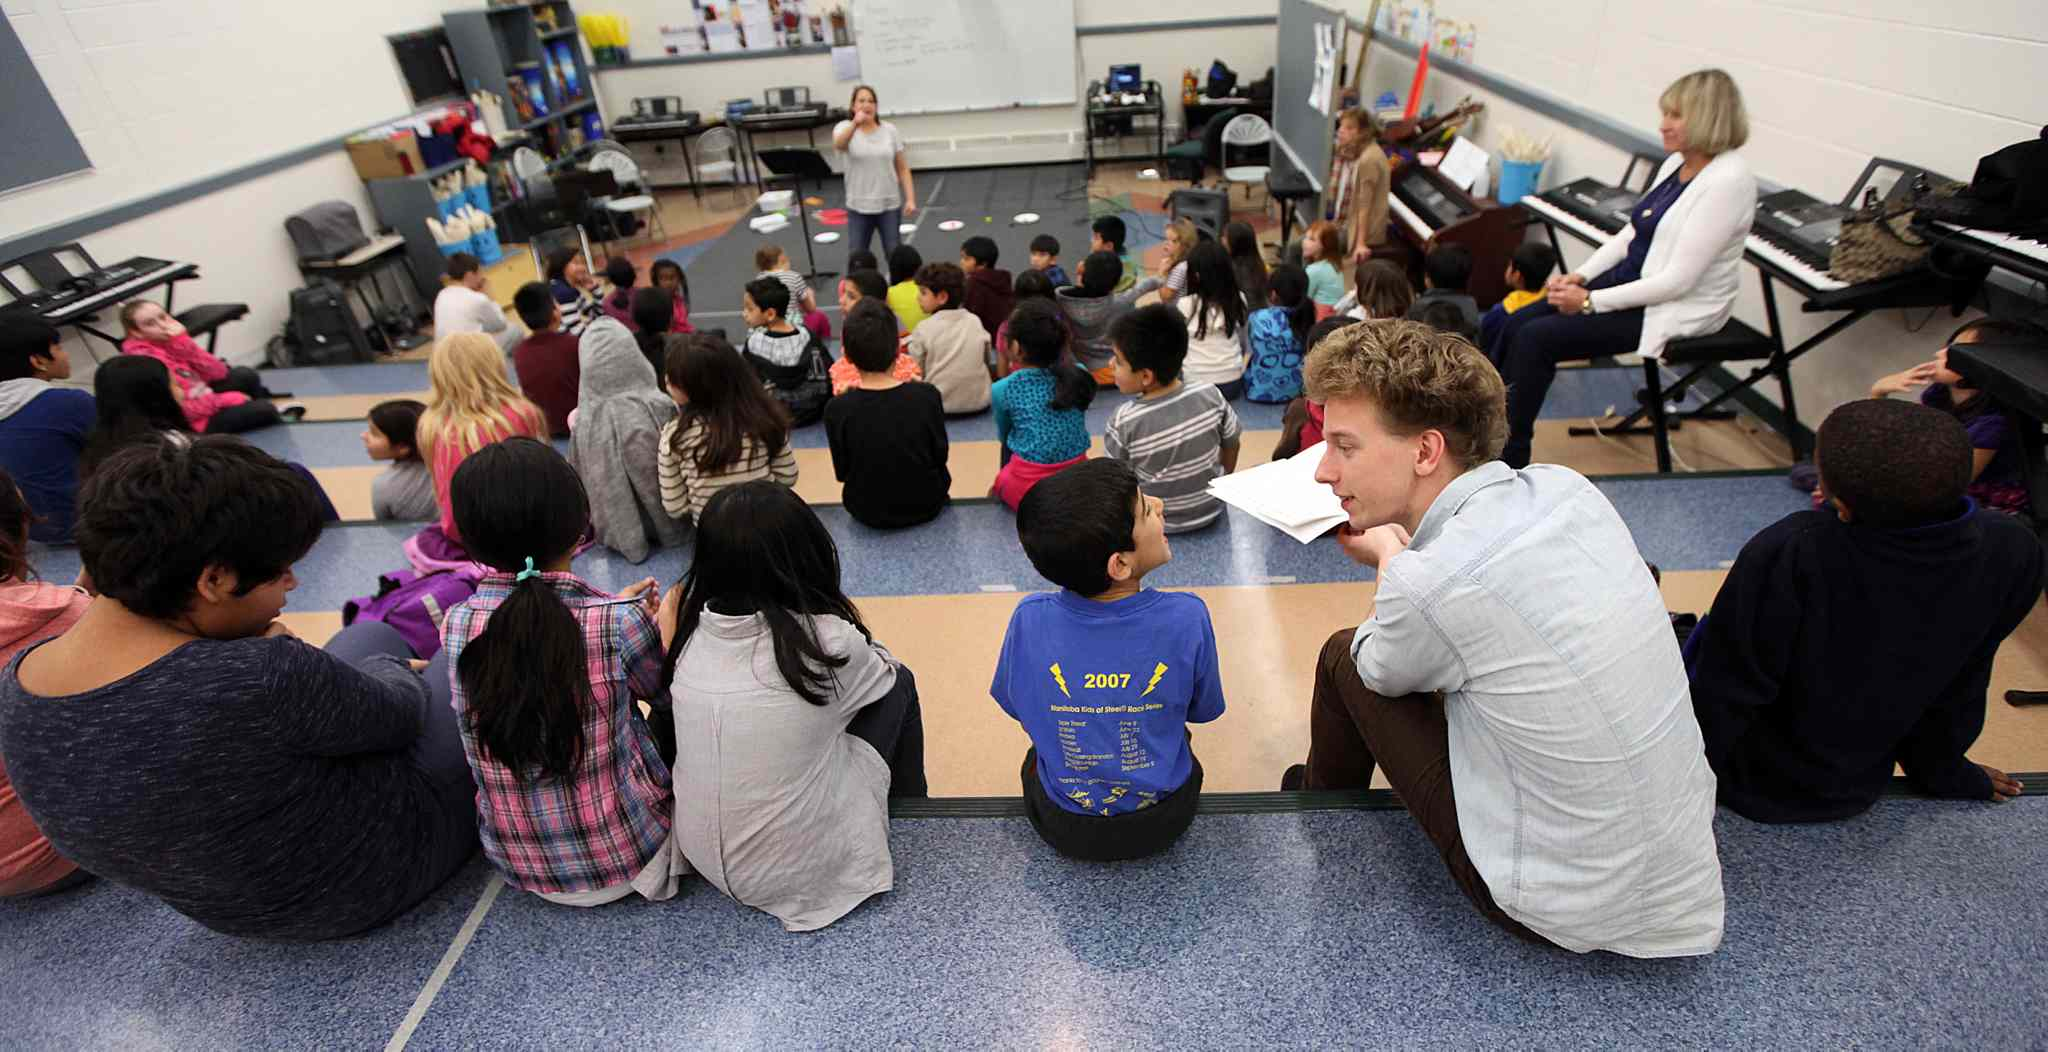 John Sellick (WSO) Sistema Instructor works with Students from King Edward School.